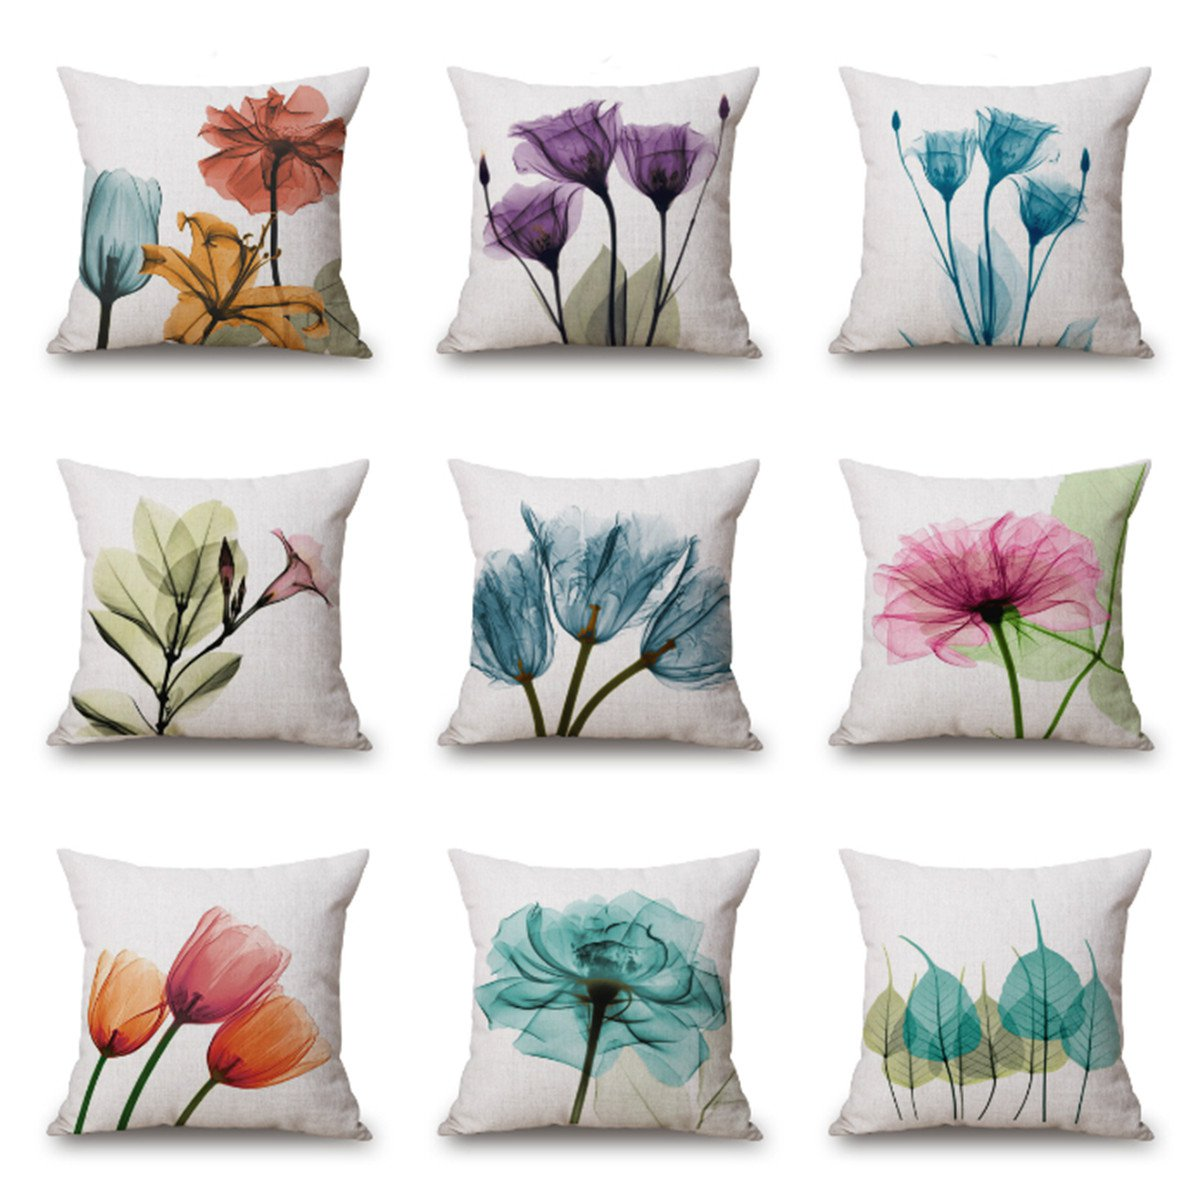 Meigar Decorative Throw Pillow Covers Clearance 18x18 Inches Simple Style Flowers Linen Pillow Cases Protector with Zipper for Car Sofa Couch Bed Home